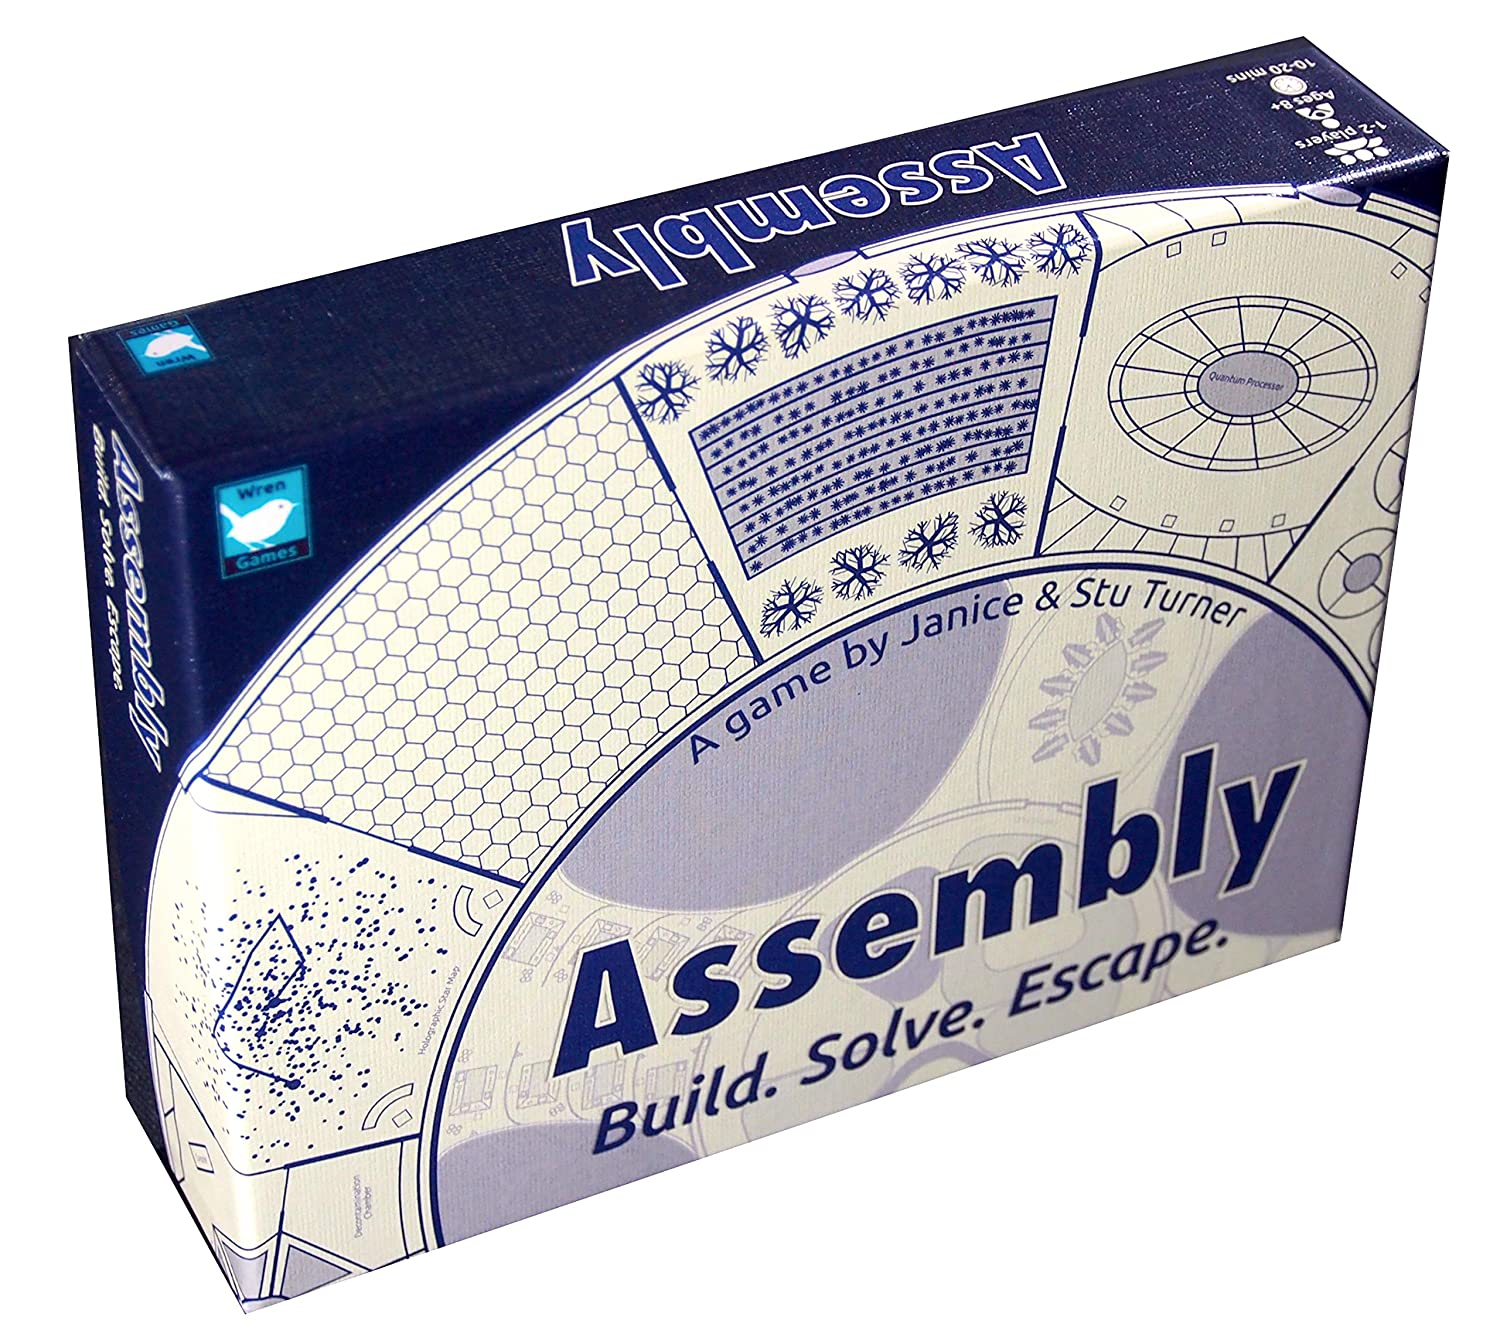 An Addictive /& Mind-Bending Escape Puzzle Card Game 2-player Cooperative or Solo Wren Games Assembly Board Game